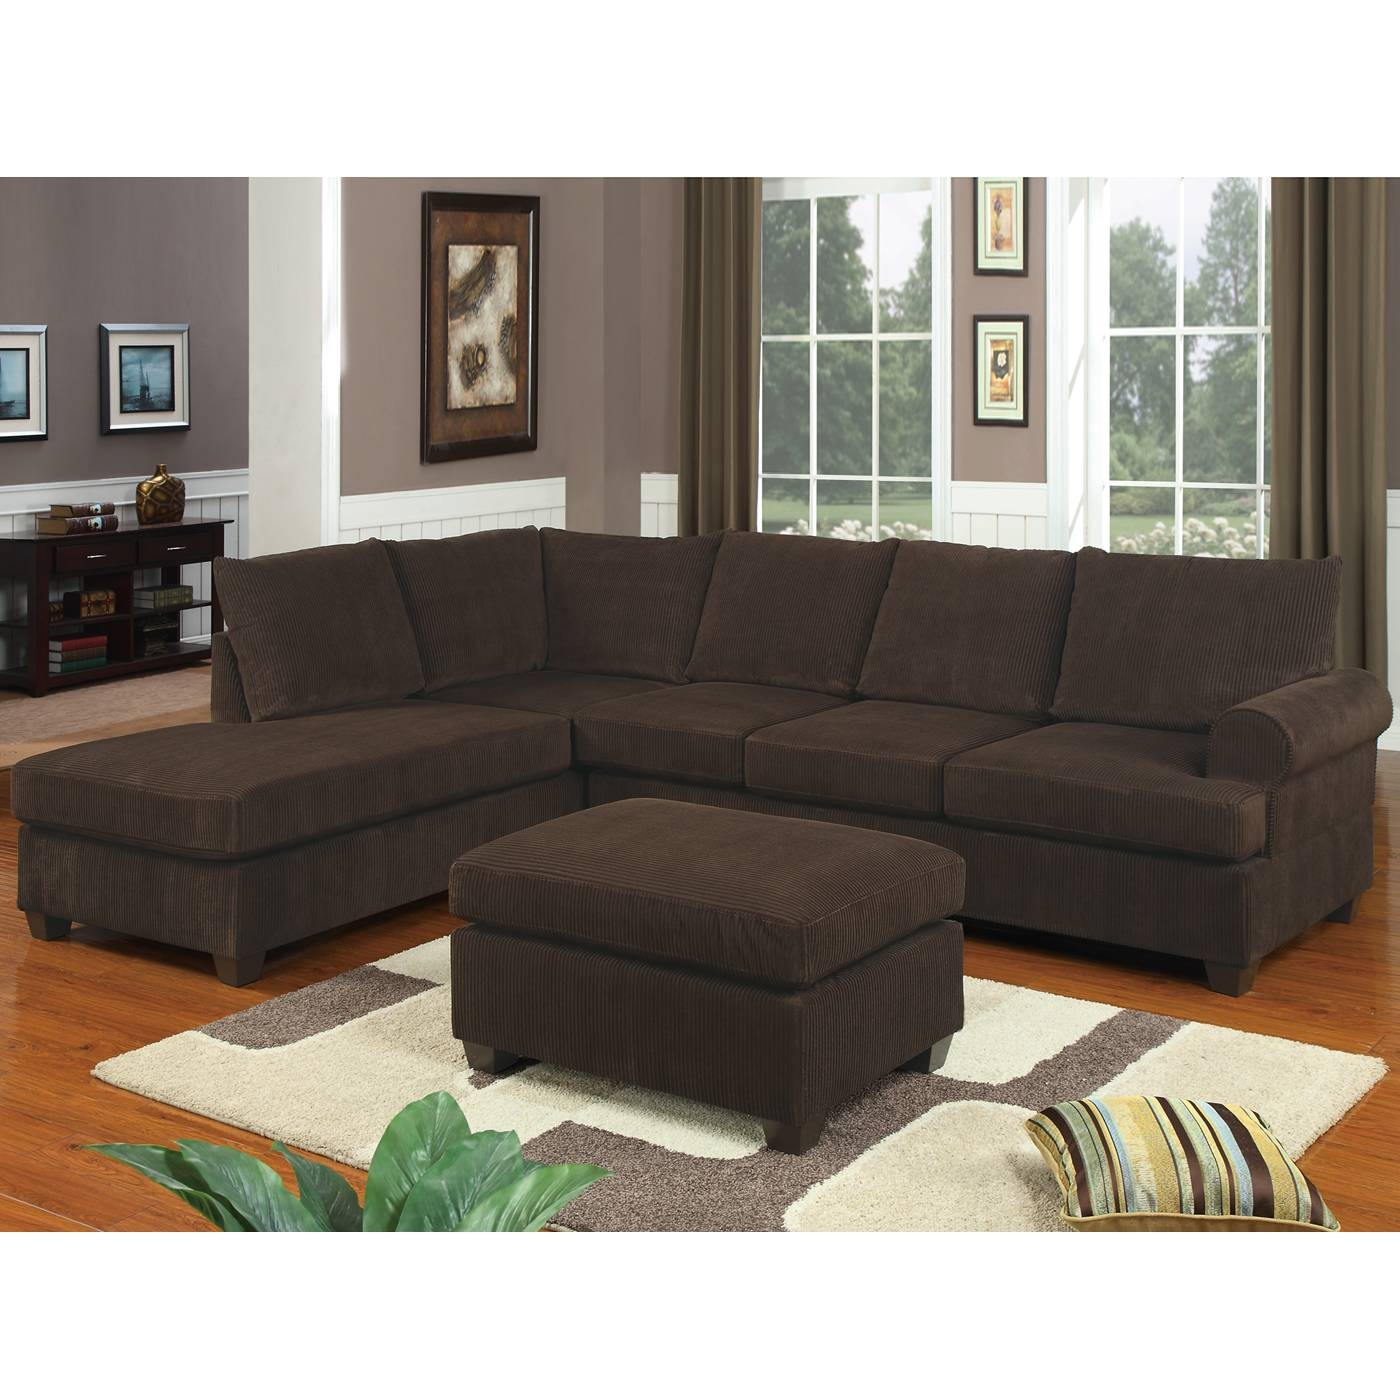 10 Foot Sectional Sofa - Tourdecarroll within 10 Piece Sectional Sofa (Image 1 of 30)